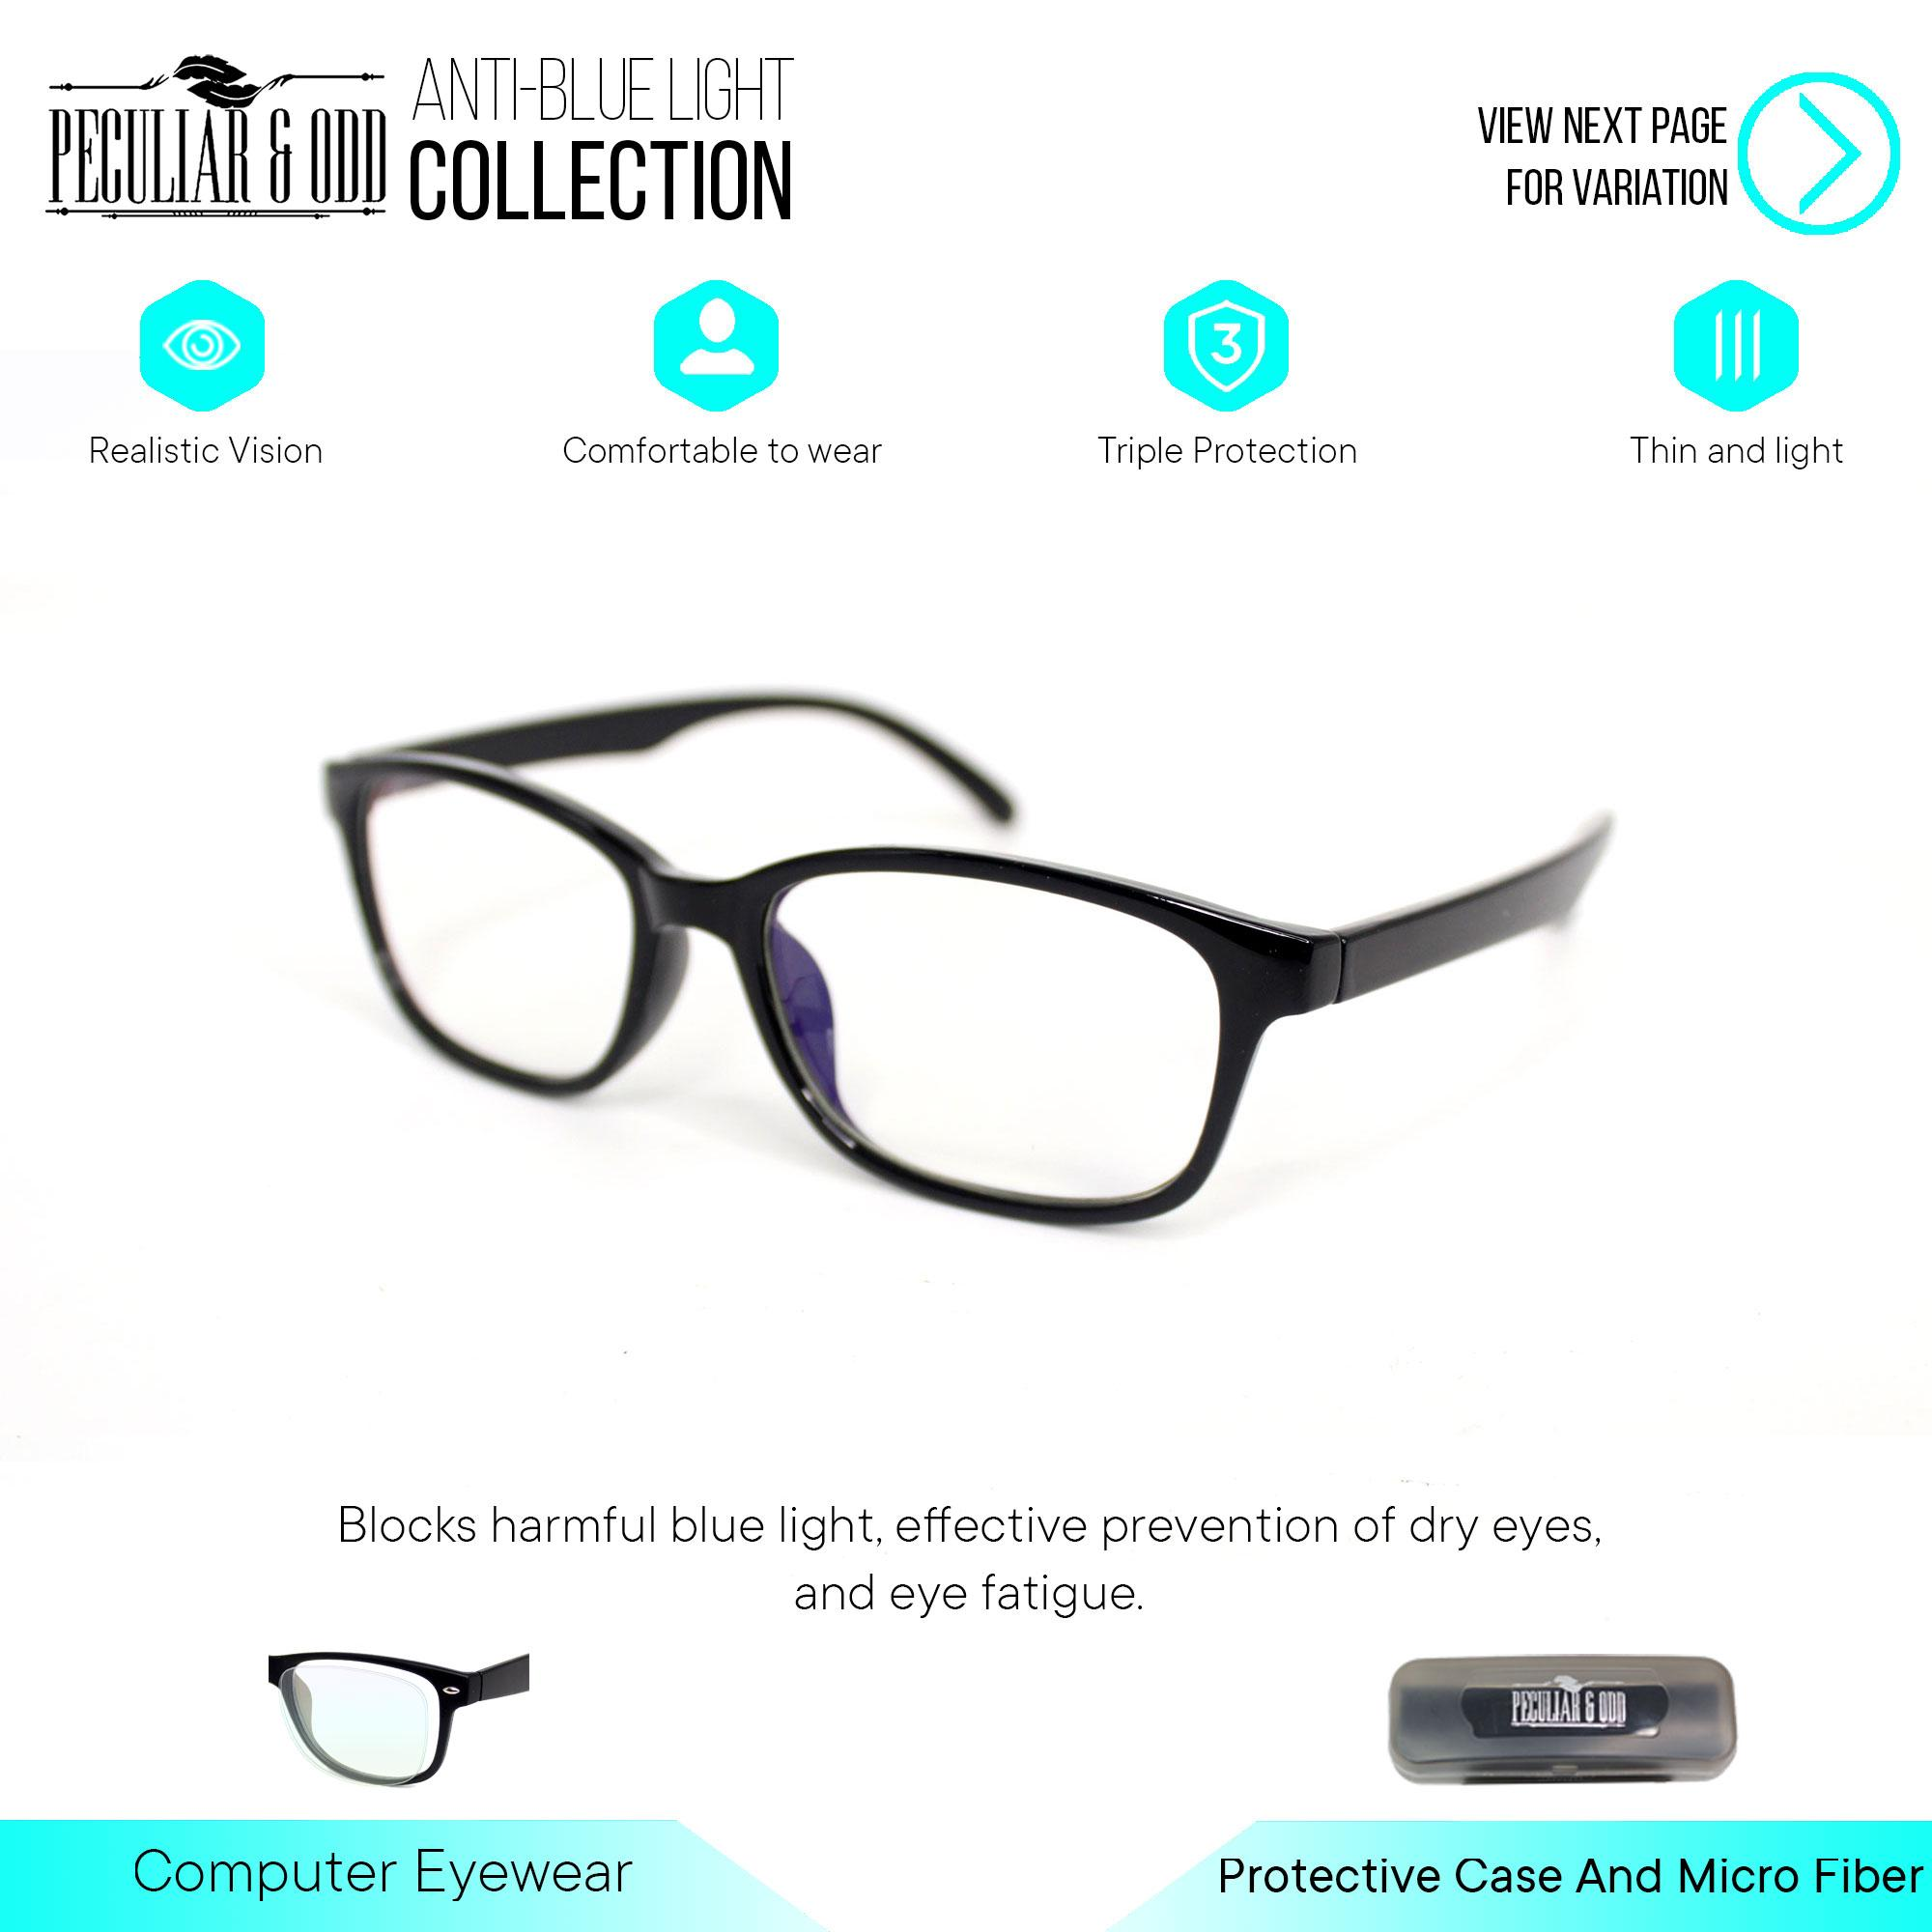 7367a4b84 Peculiar Square 3028_CoalBlackClear Anti Radiation Computer Optical  Replaceable for Prescription Unisex_new Eyewear / Eyeglass- Peculiar